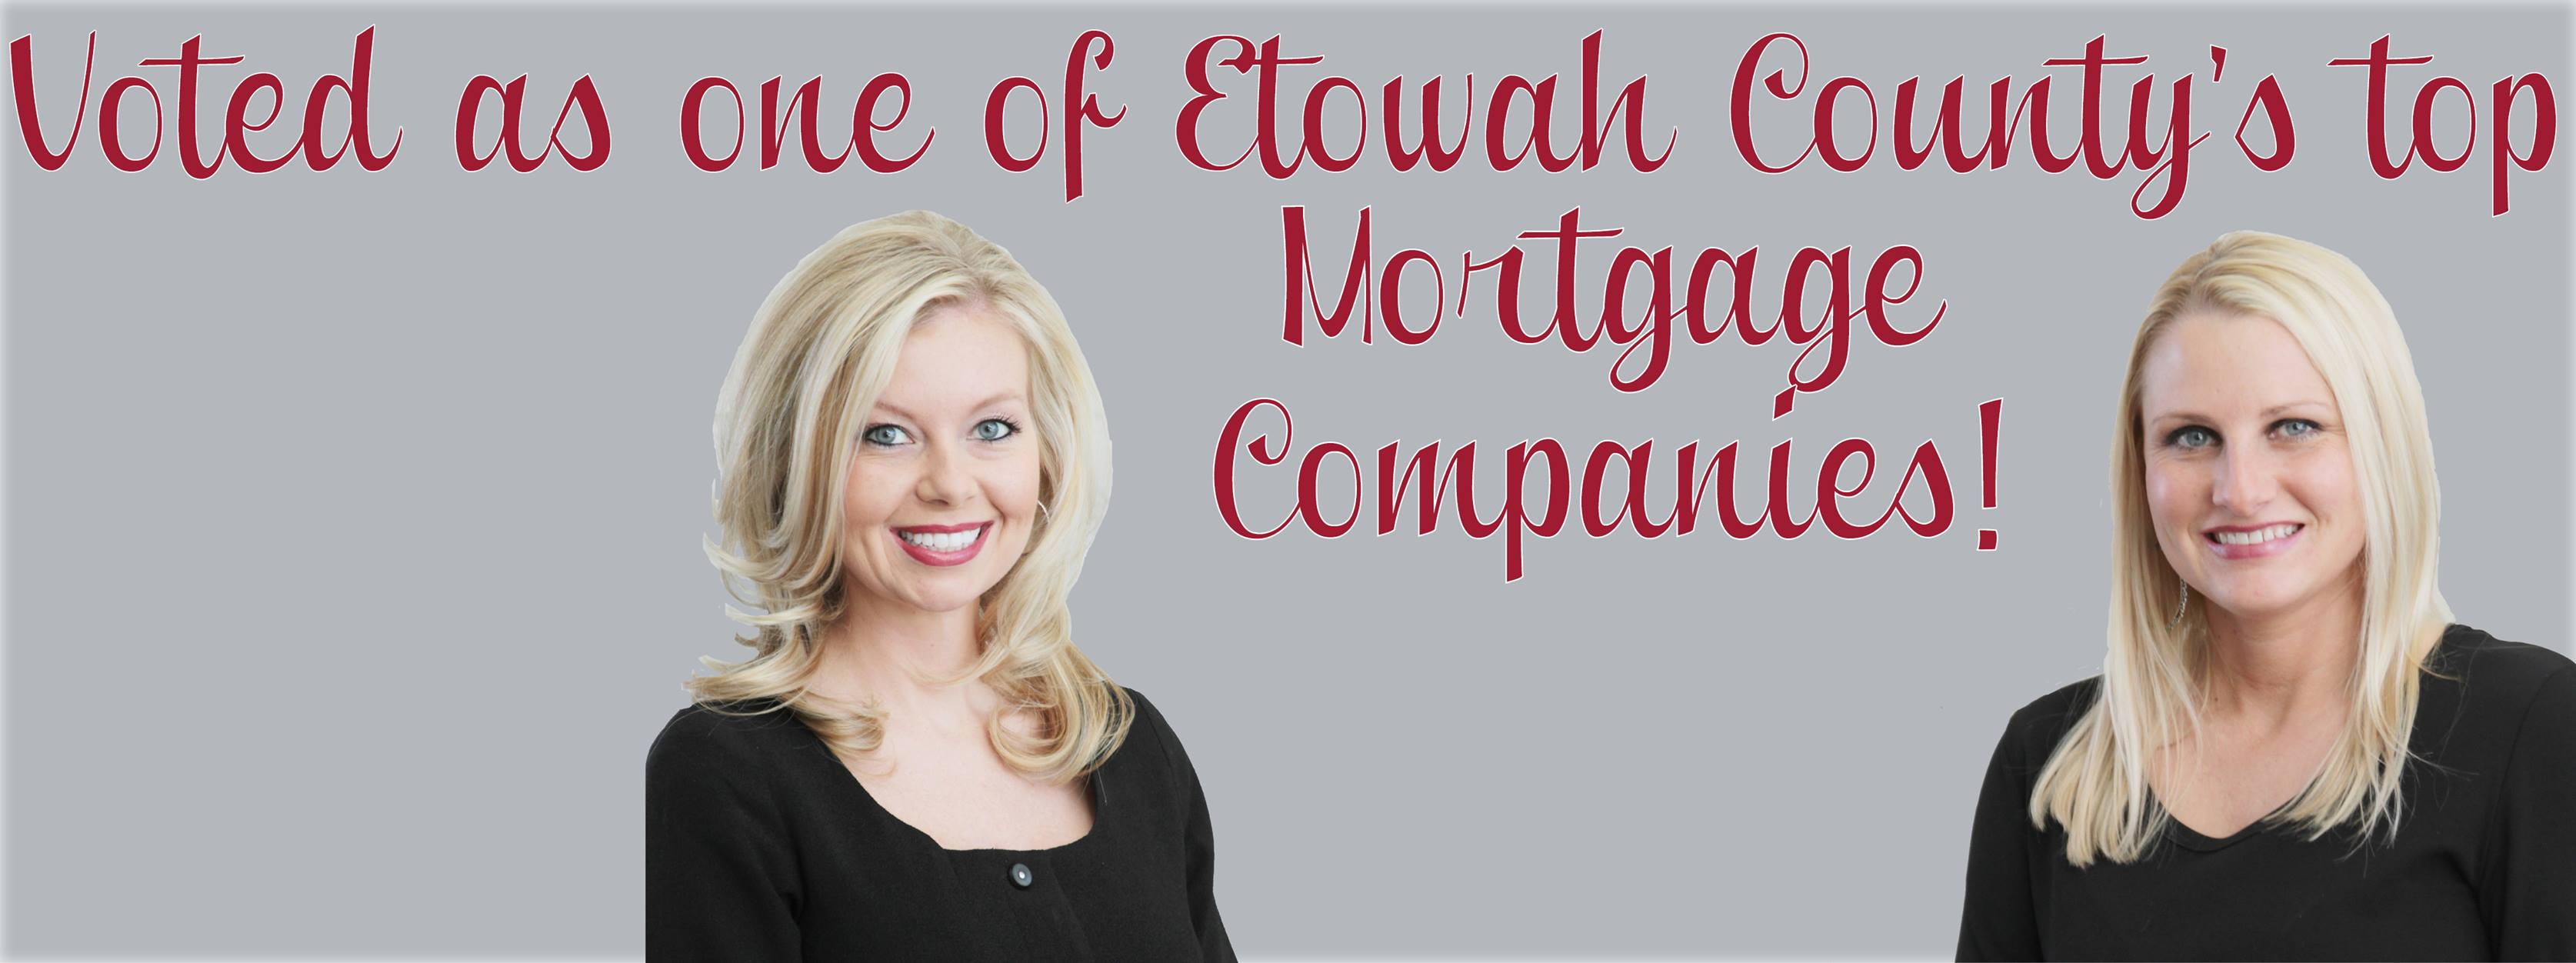 Voted as one of Etowah County's top mortgage companies!